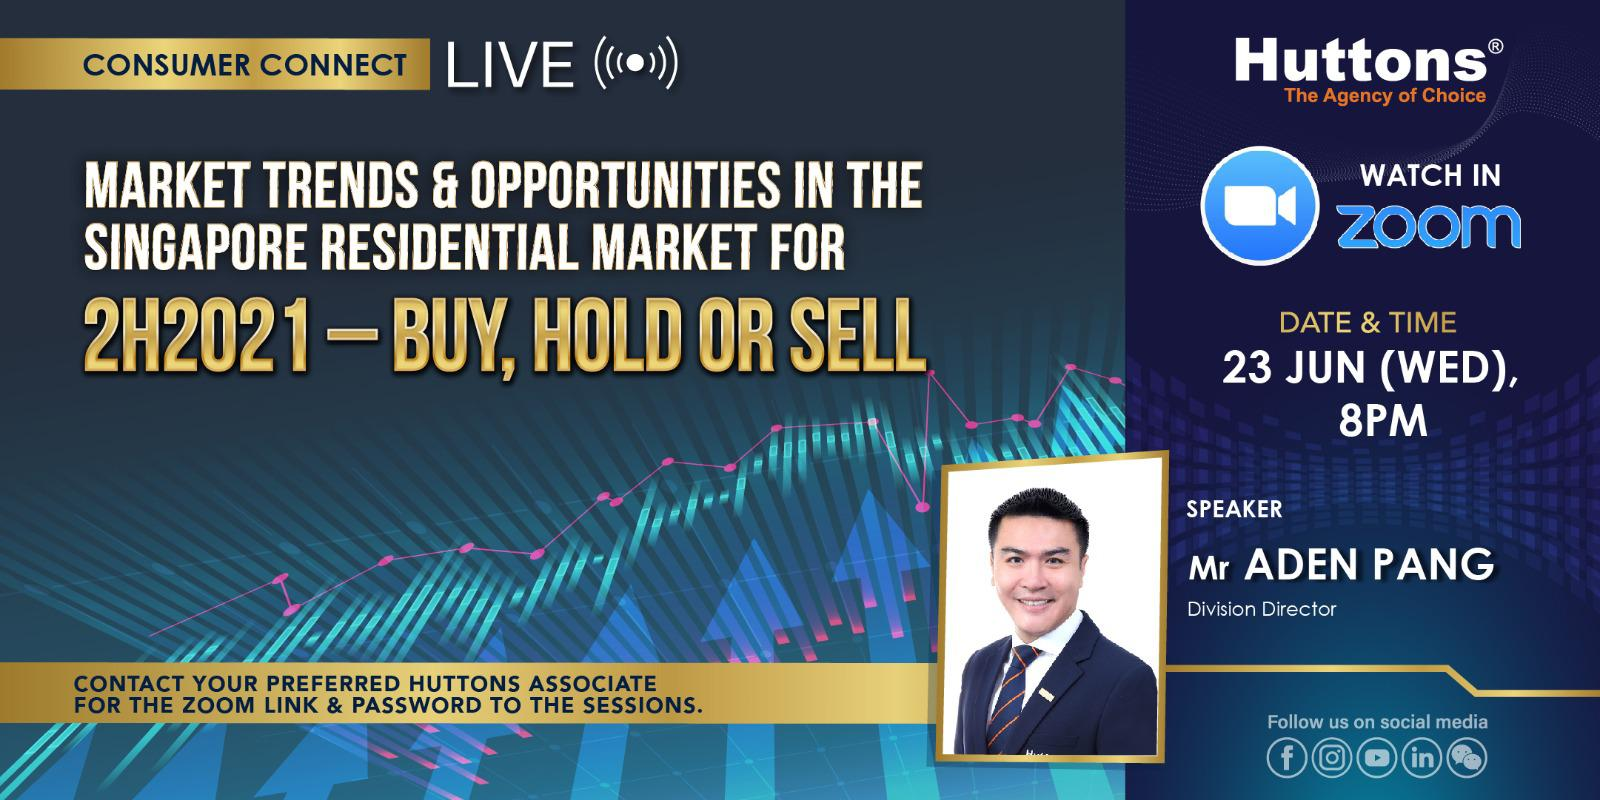 Market Trends and Opportunities in the Singapore Residential Market for 2H2021